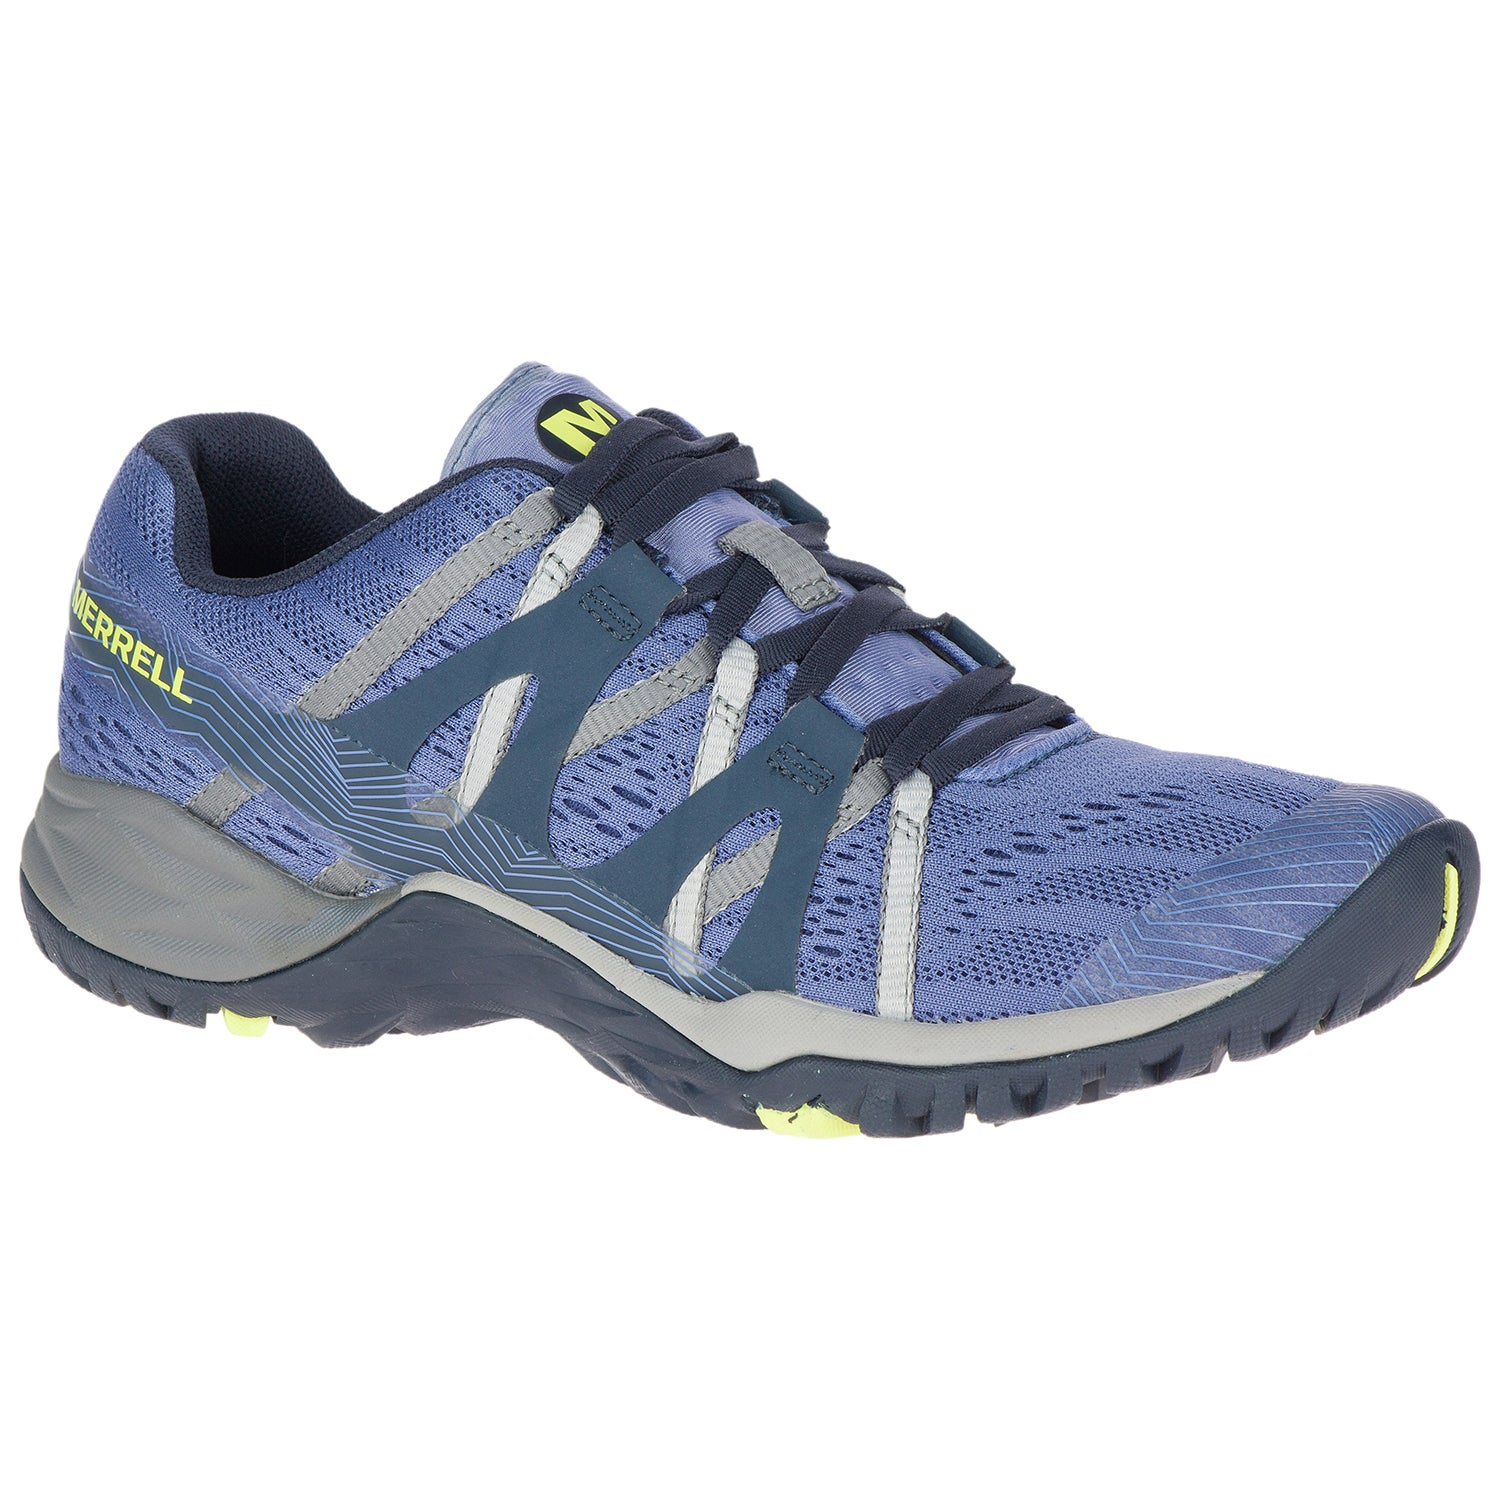 Approach Shoes from Fitness Footwear